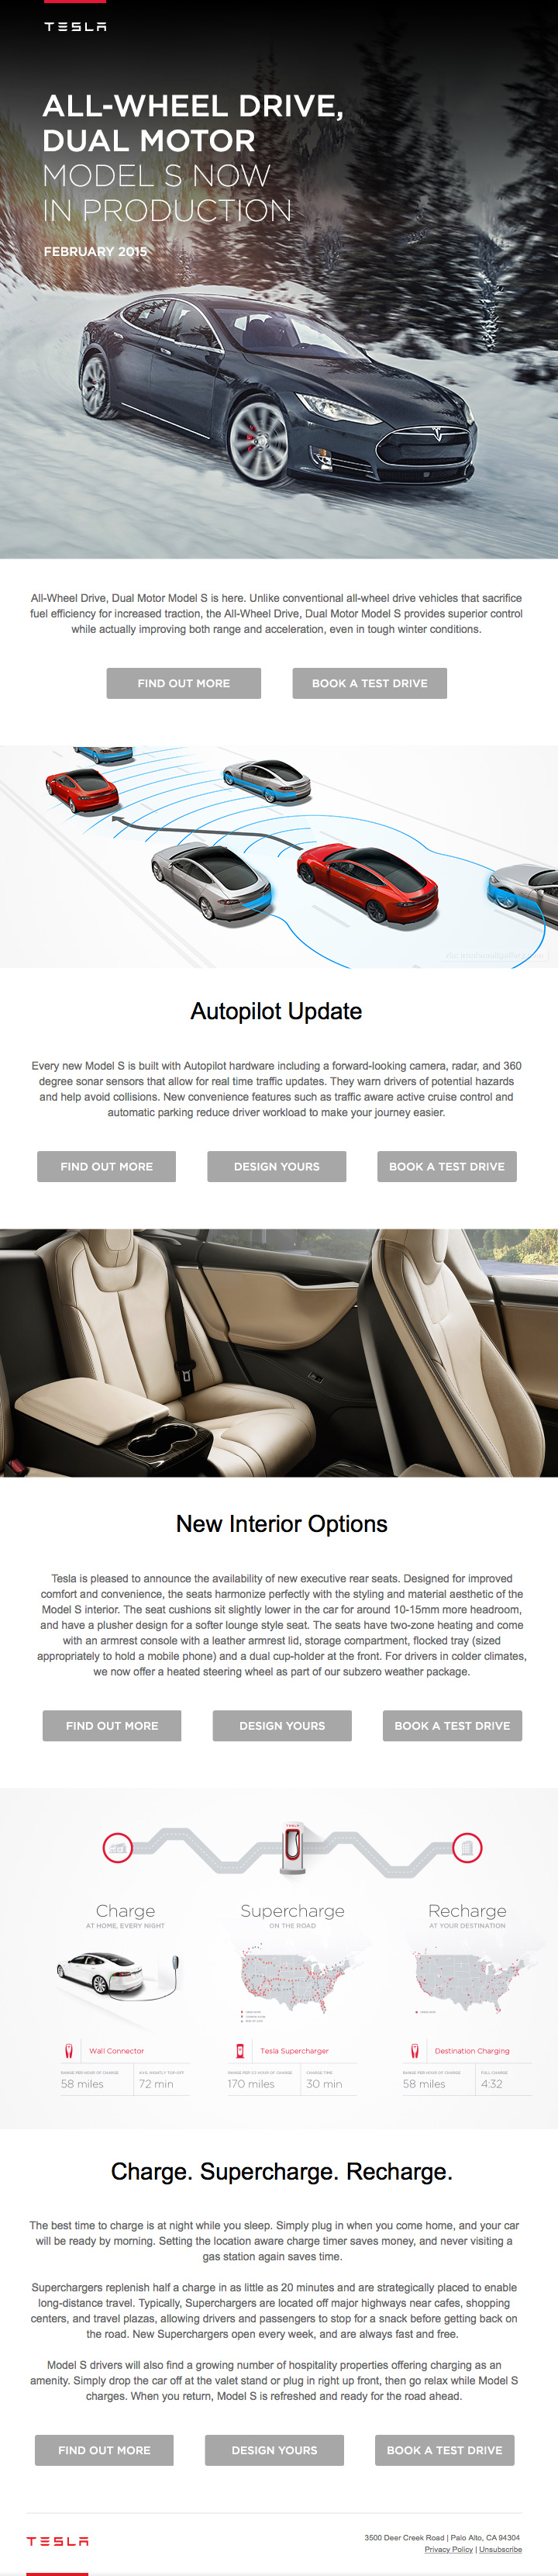 Tesla Upcoming Model Production email